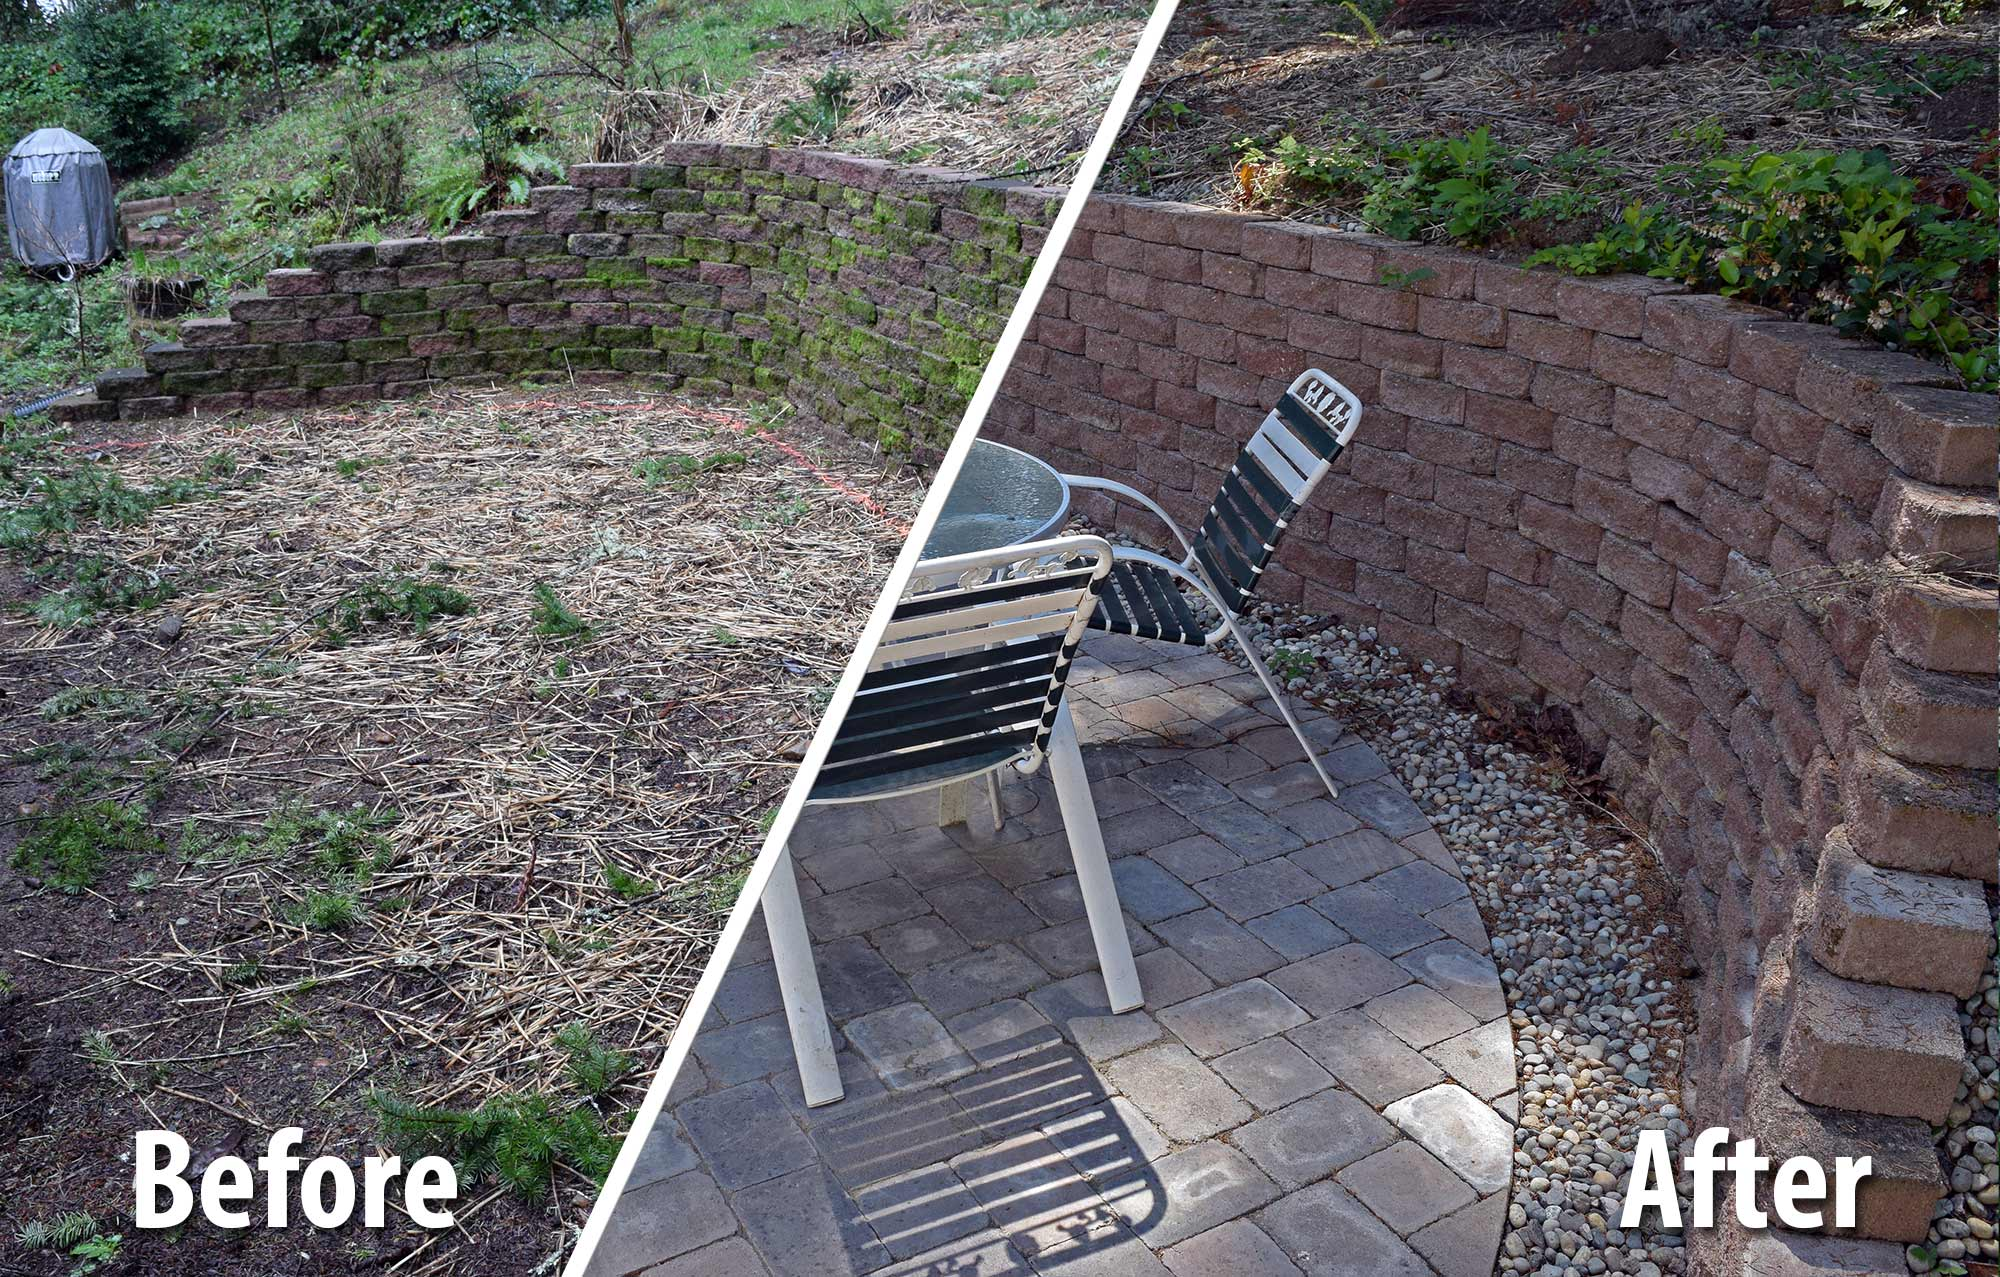 West Olympia Paver Patio Extension - AJB Landscaping & Fence on Backyard Patio Extension id=30646